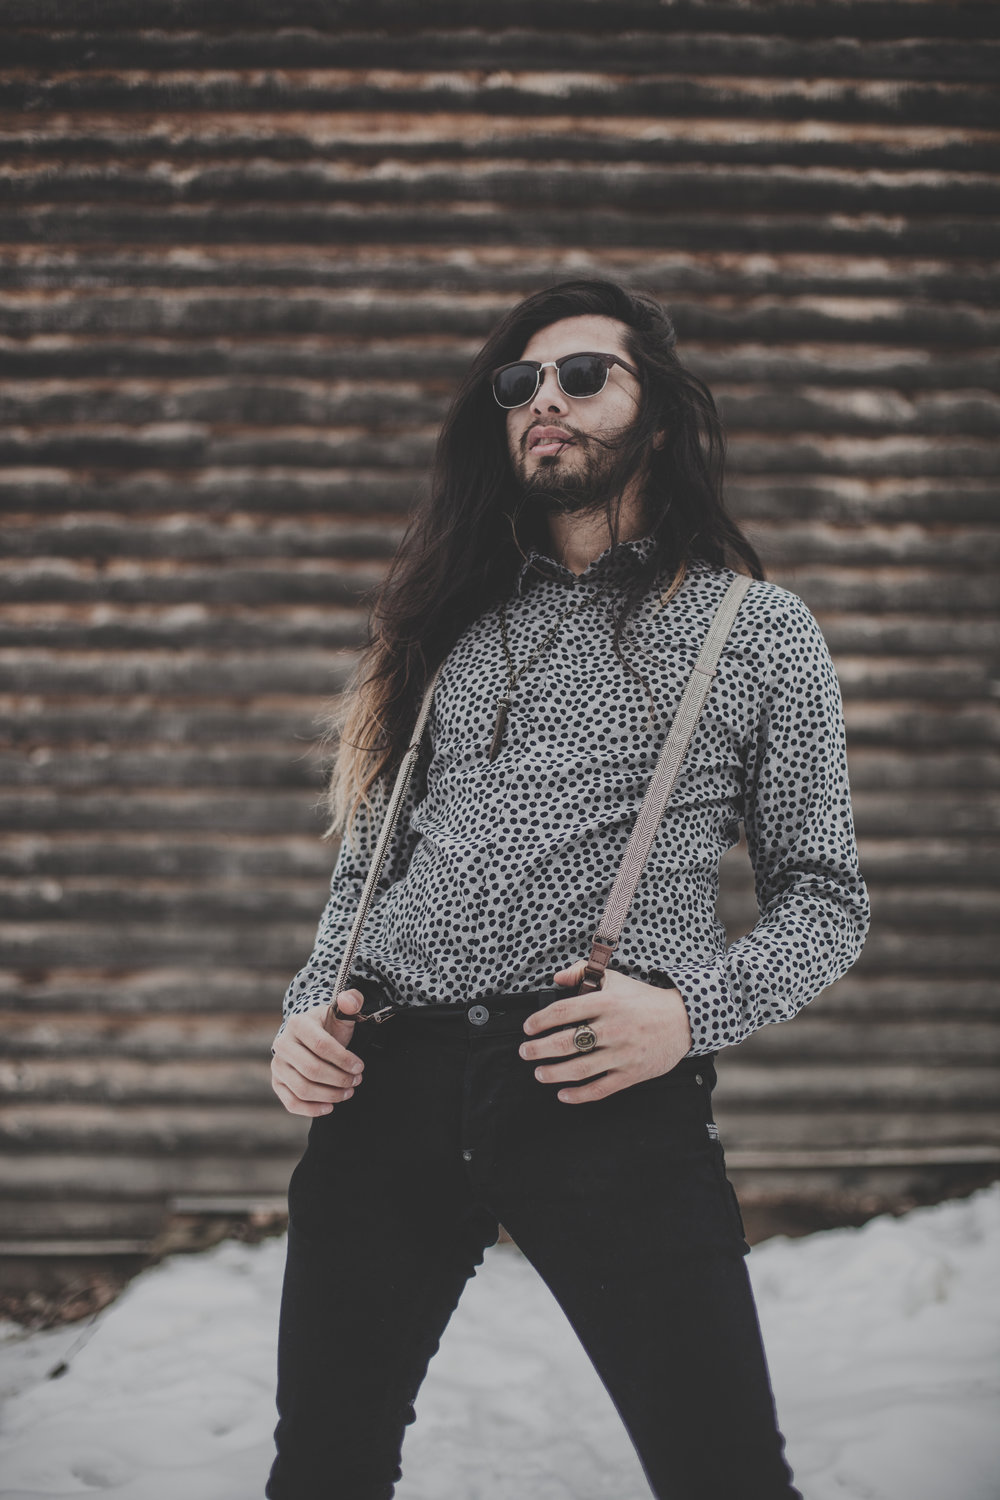 ©duston-todd-mens-fashion-sunglasses-suspenders.jpg